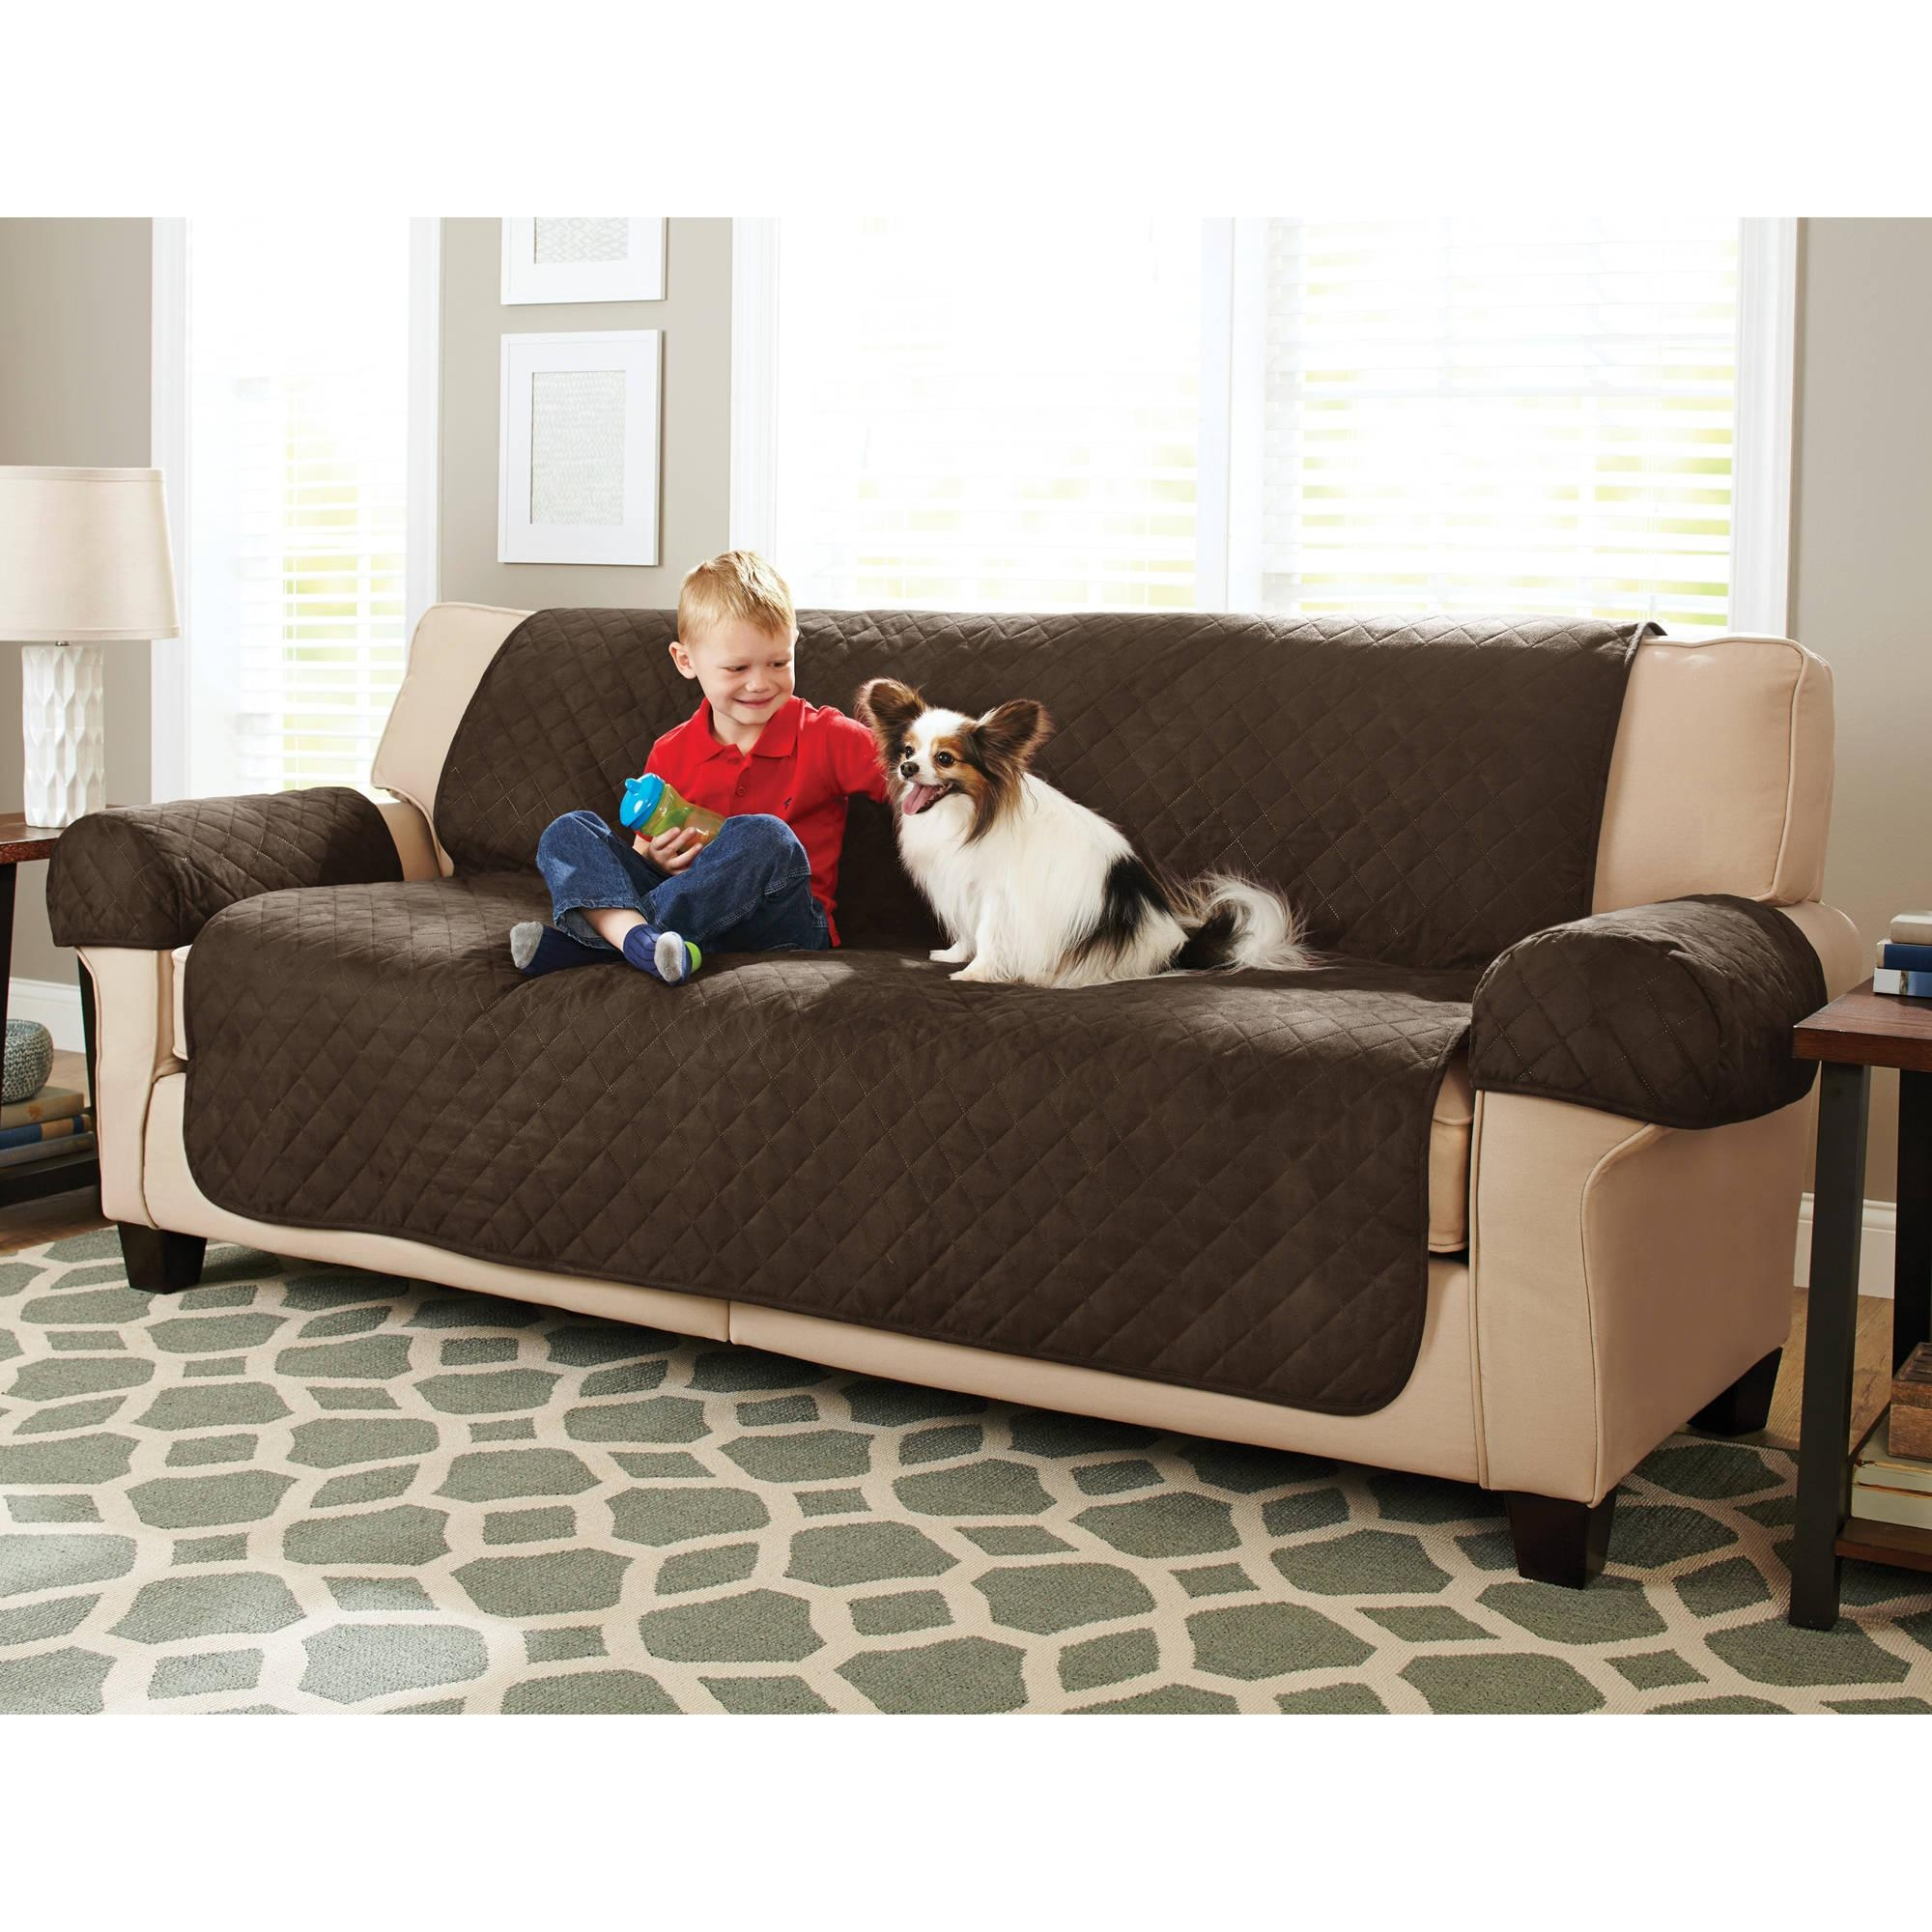 Decor: Stretch Sofa Slipcover | Walmart Slipcovers | Sofa Covers Within Walmart Slipcovers For Sofas (Image 1 of 20)